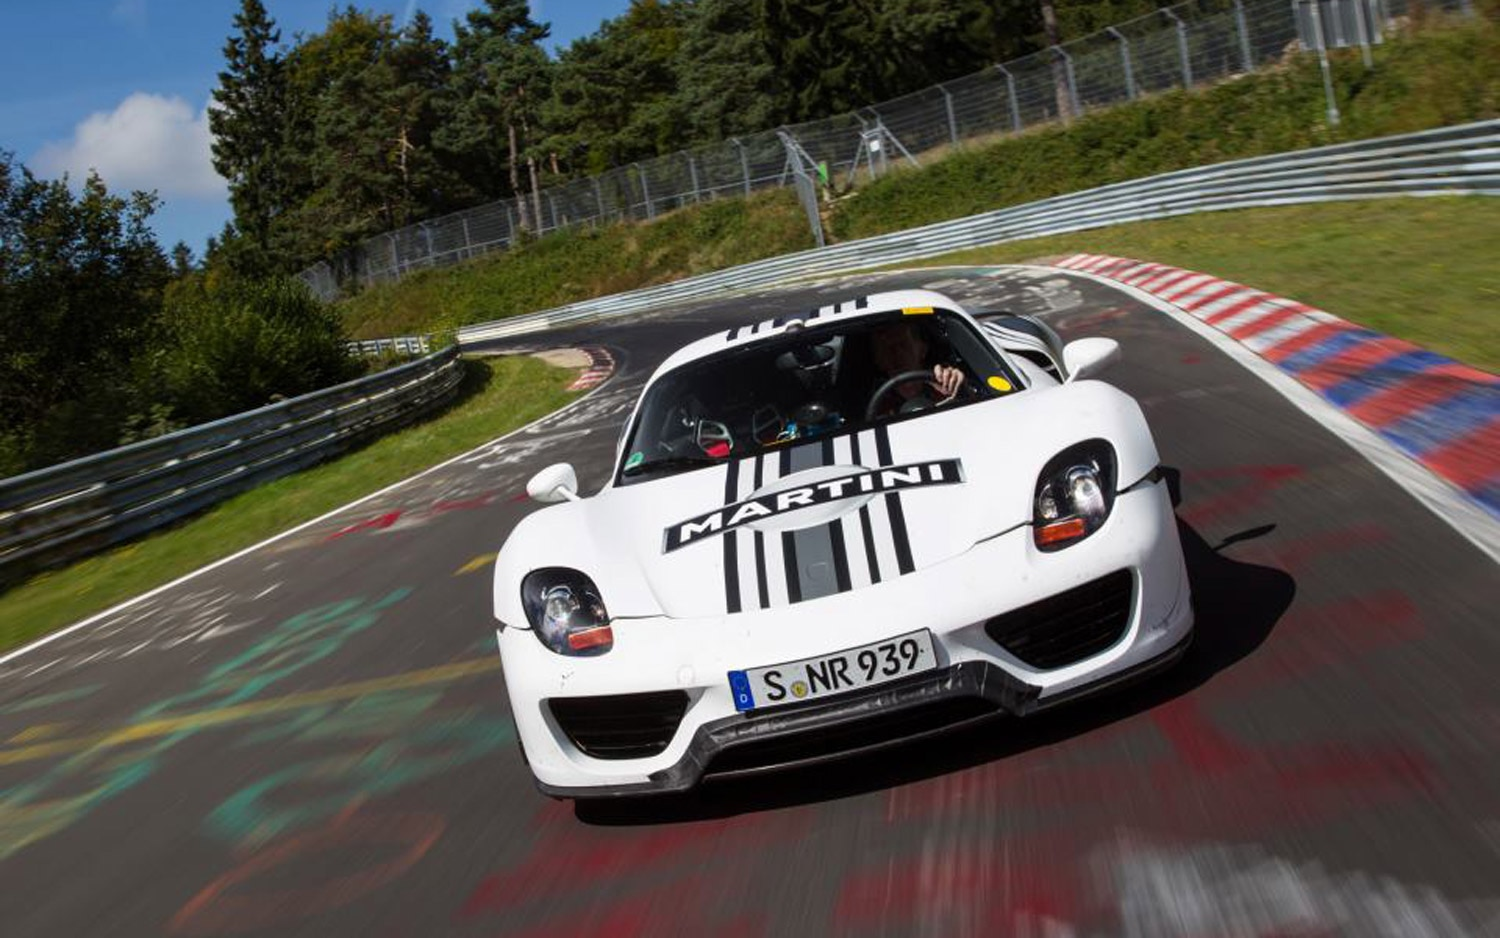 Porsche 918 Spyder On Nurburgring Front View11